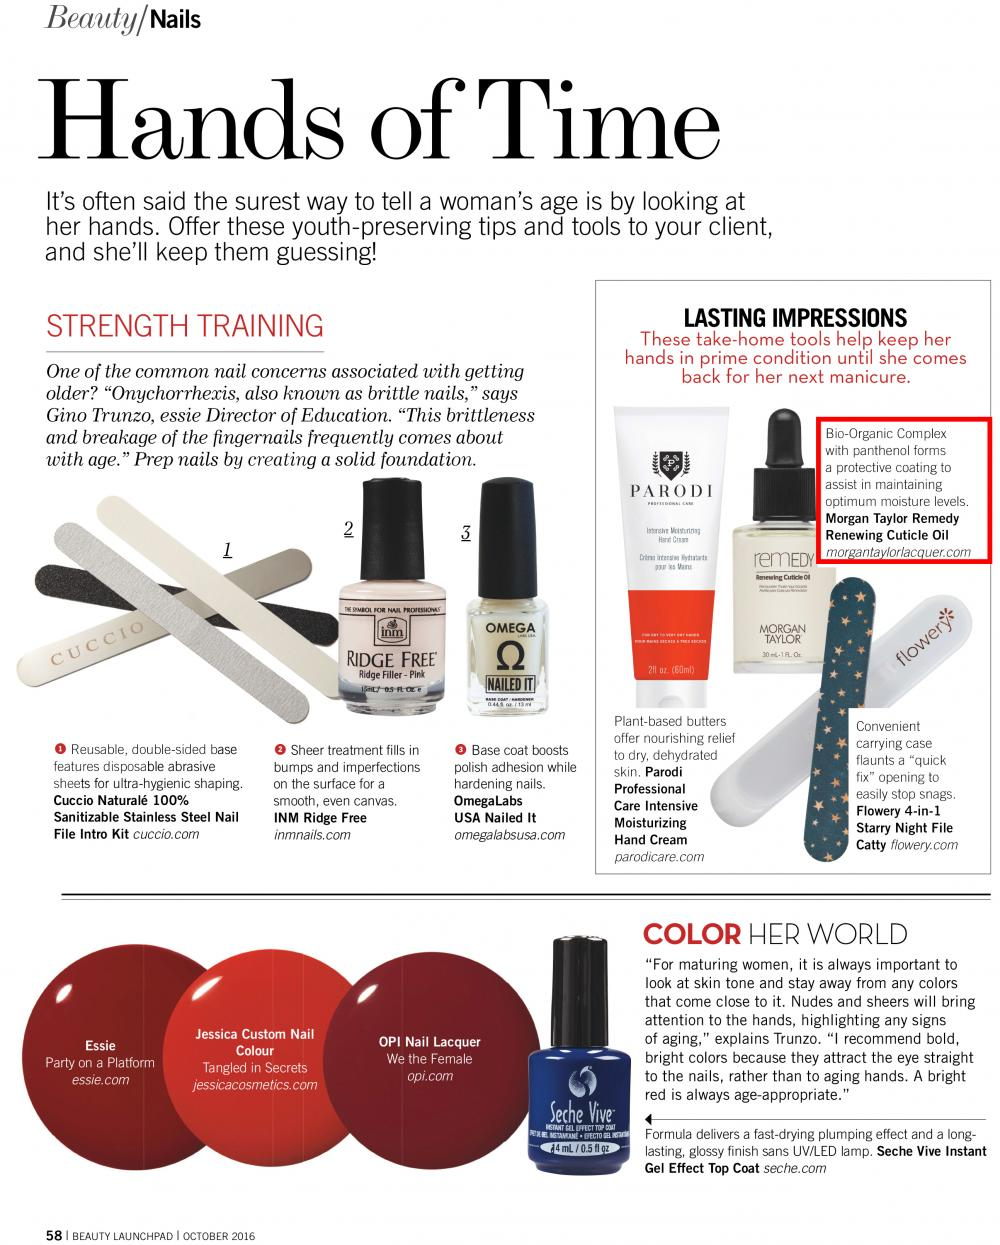 BEAUTY LAUNCHPAD MAGAZINE - October, 2016